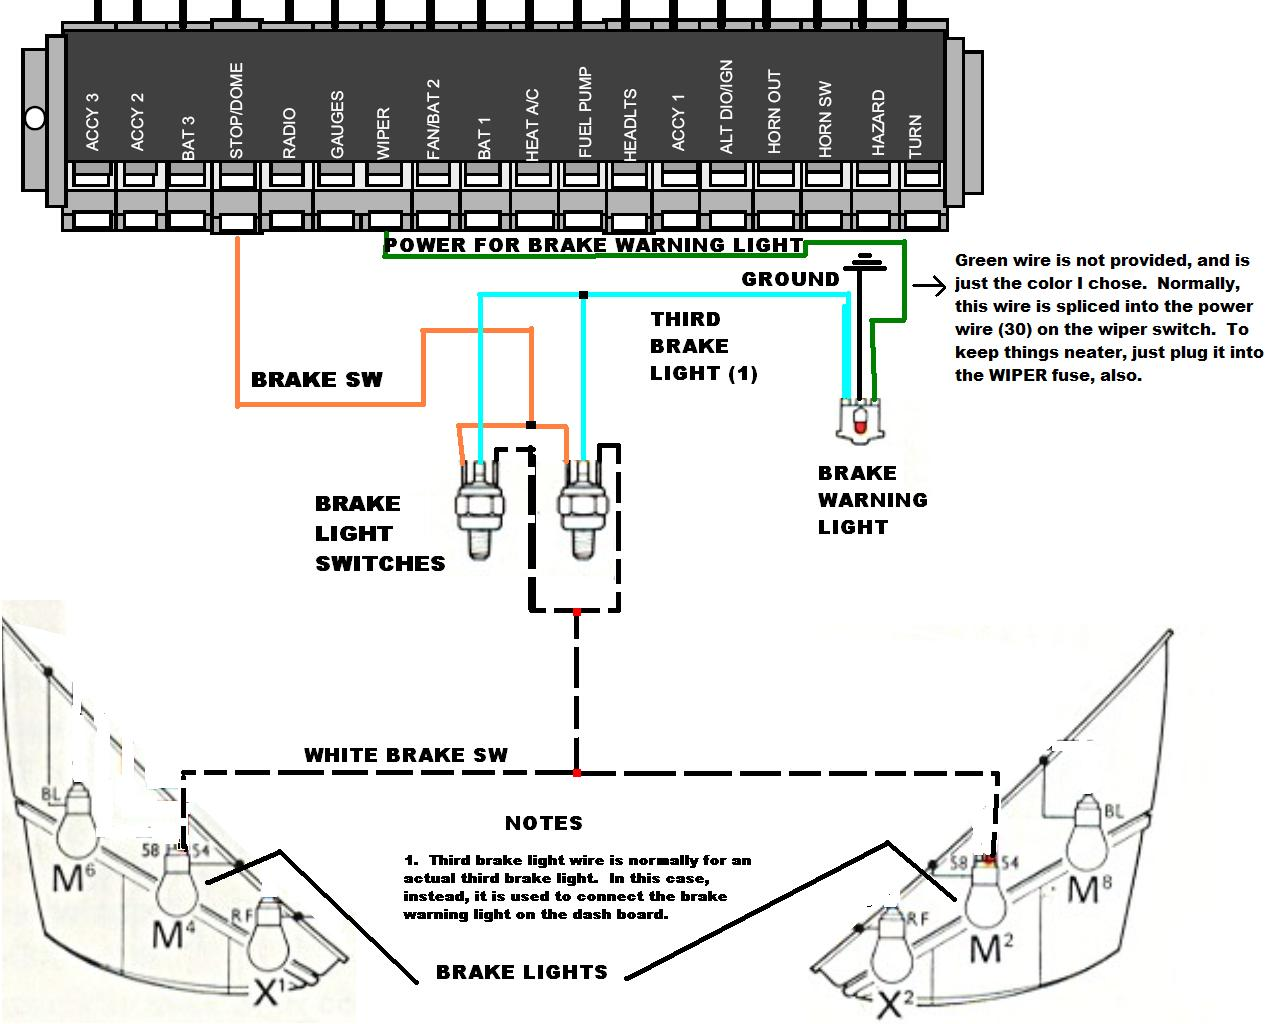 1974 vw thing wiring diagram